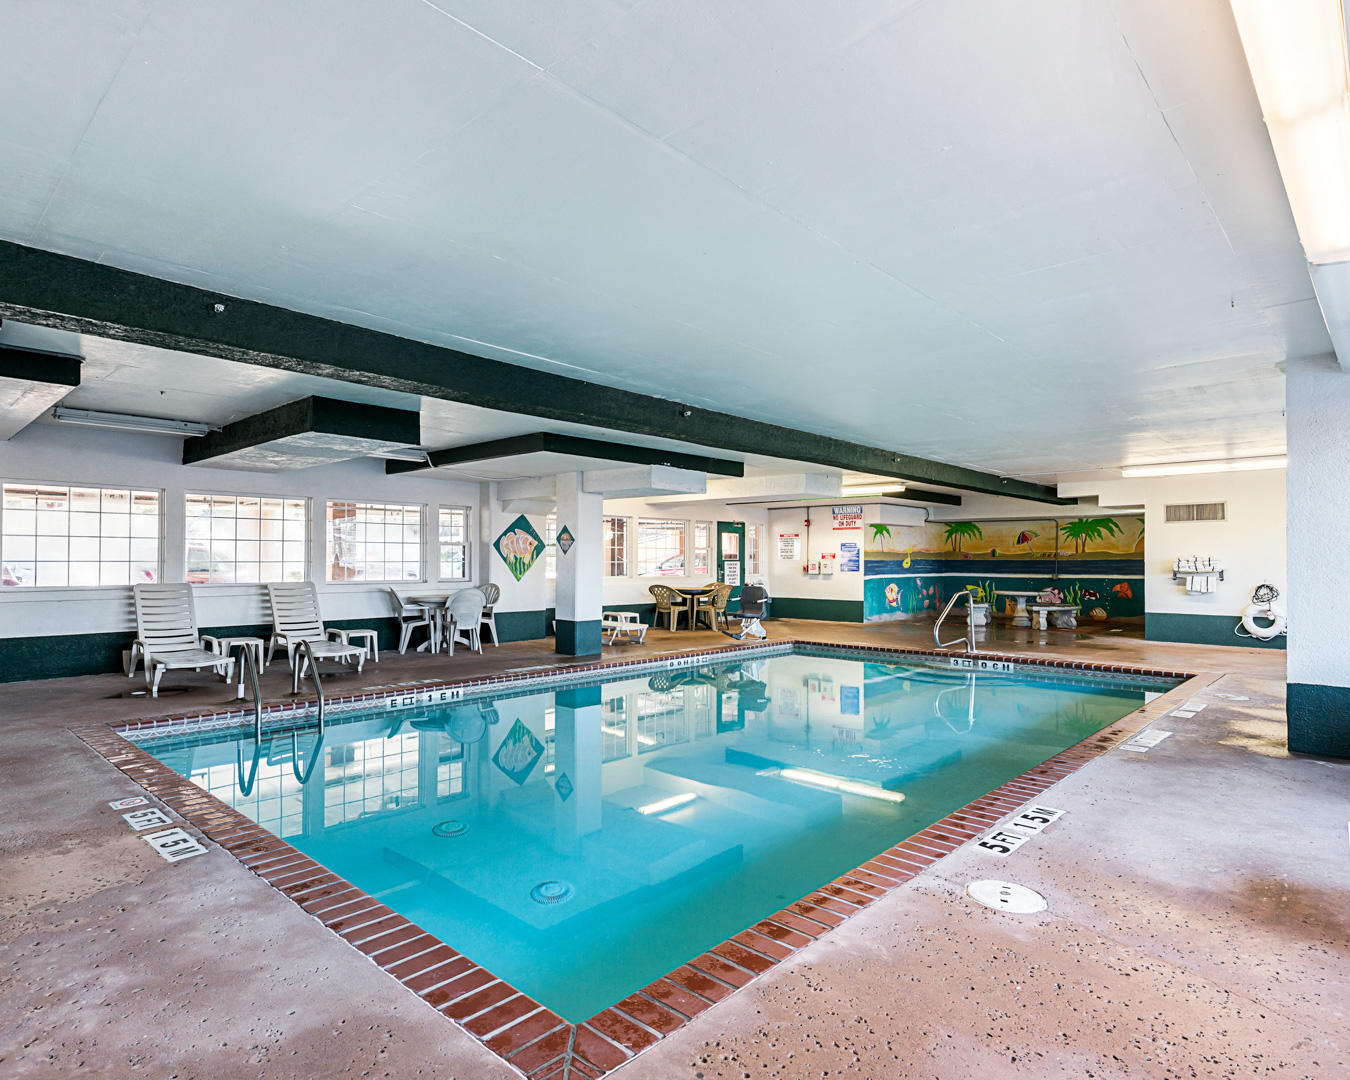 Looking for a Galveston Hotel? 2-star hotels from $48, 3 stars from $56 and 4 stars+ from $ Stay at Rodeway Inn from $41/night, Super 8 by Wyndham Galveston from $49/night, Beachcomber Inn from $50/night and more. Compare prices of hotels in Galveston on KAYAK now.